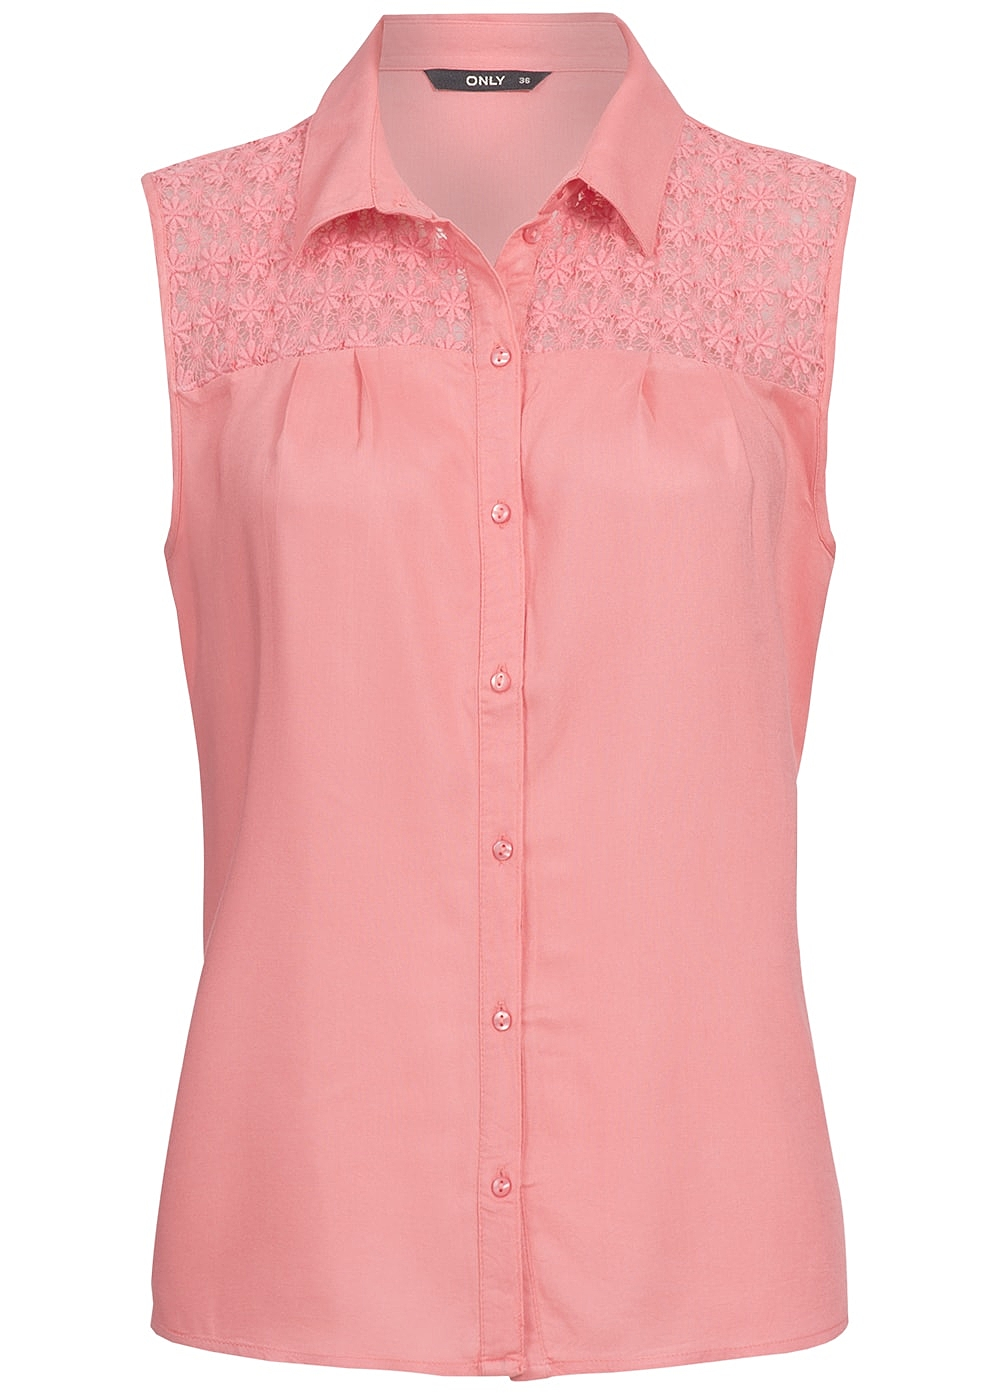 Strawberry clothing store shop online